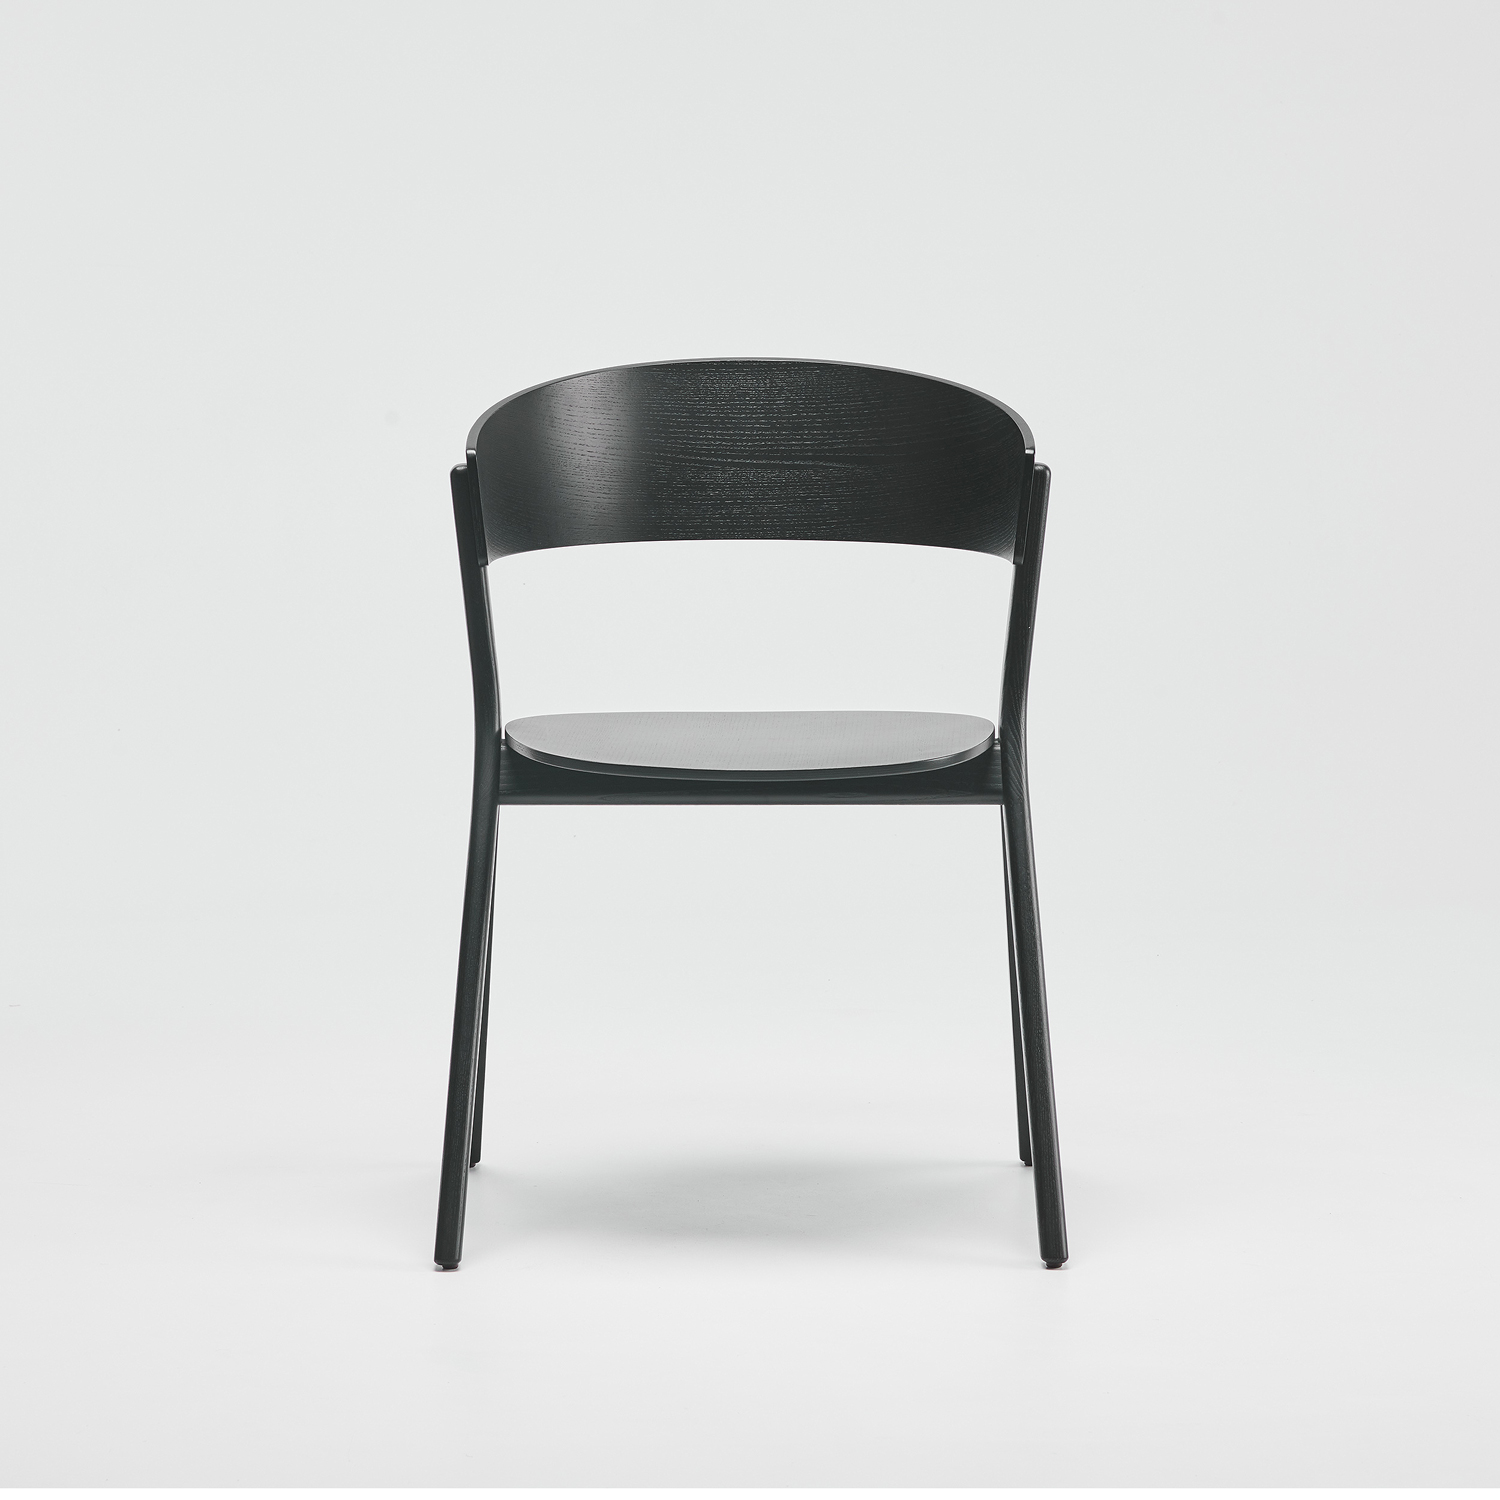 EDITS Circus wood chair in Black Ash lacquer